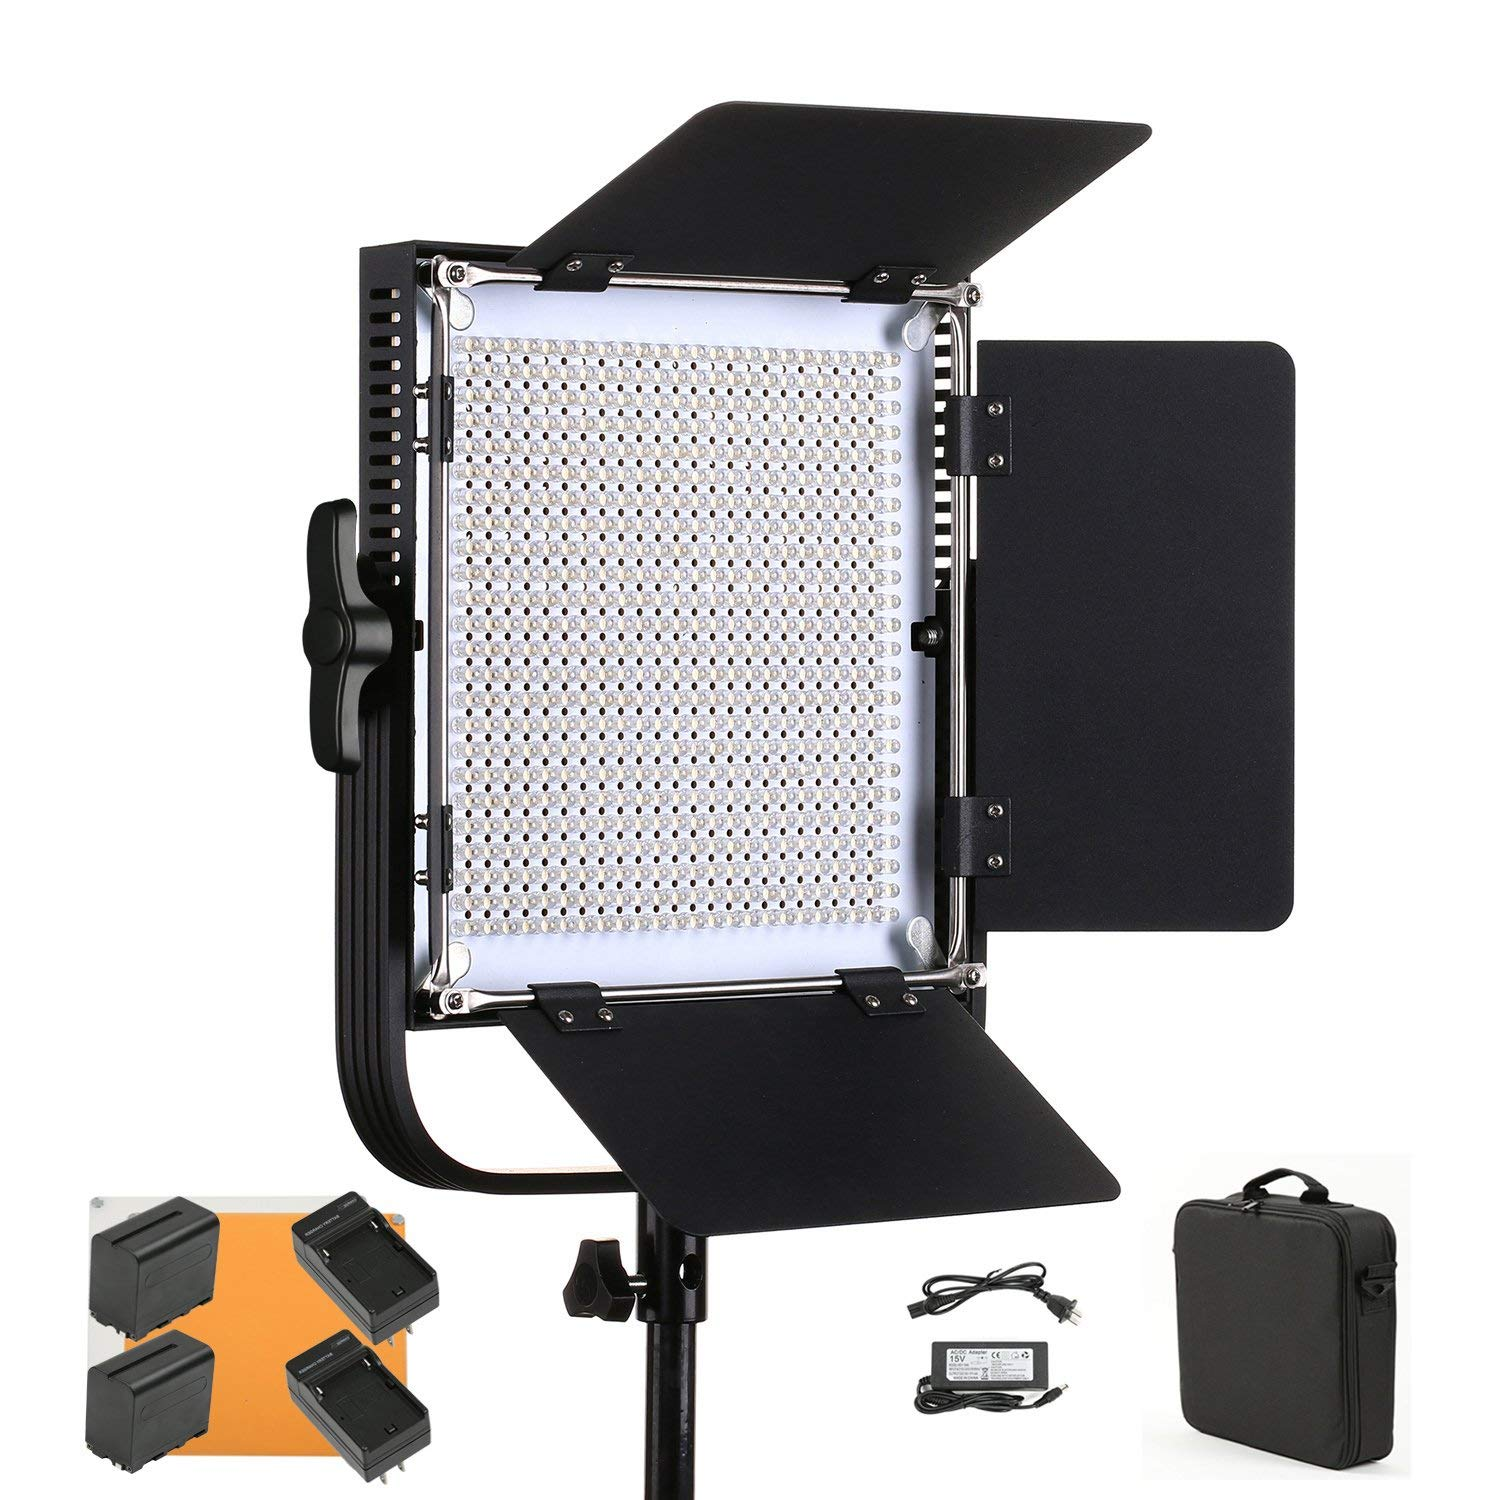 Led Video Light SUTEFOTO 660A Pro CRI95+ 4800lux 600 PCS Pro Metal Dimmable Bi-Color 3200K-5600K Light Panel for Outdoor Interview Studio Lighting Video Making Photography